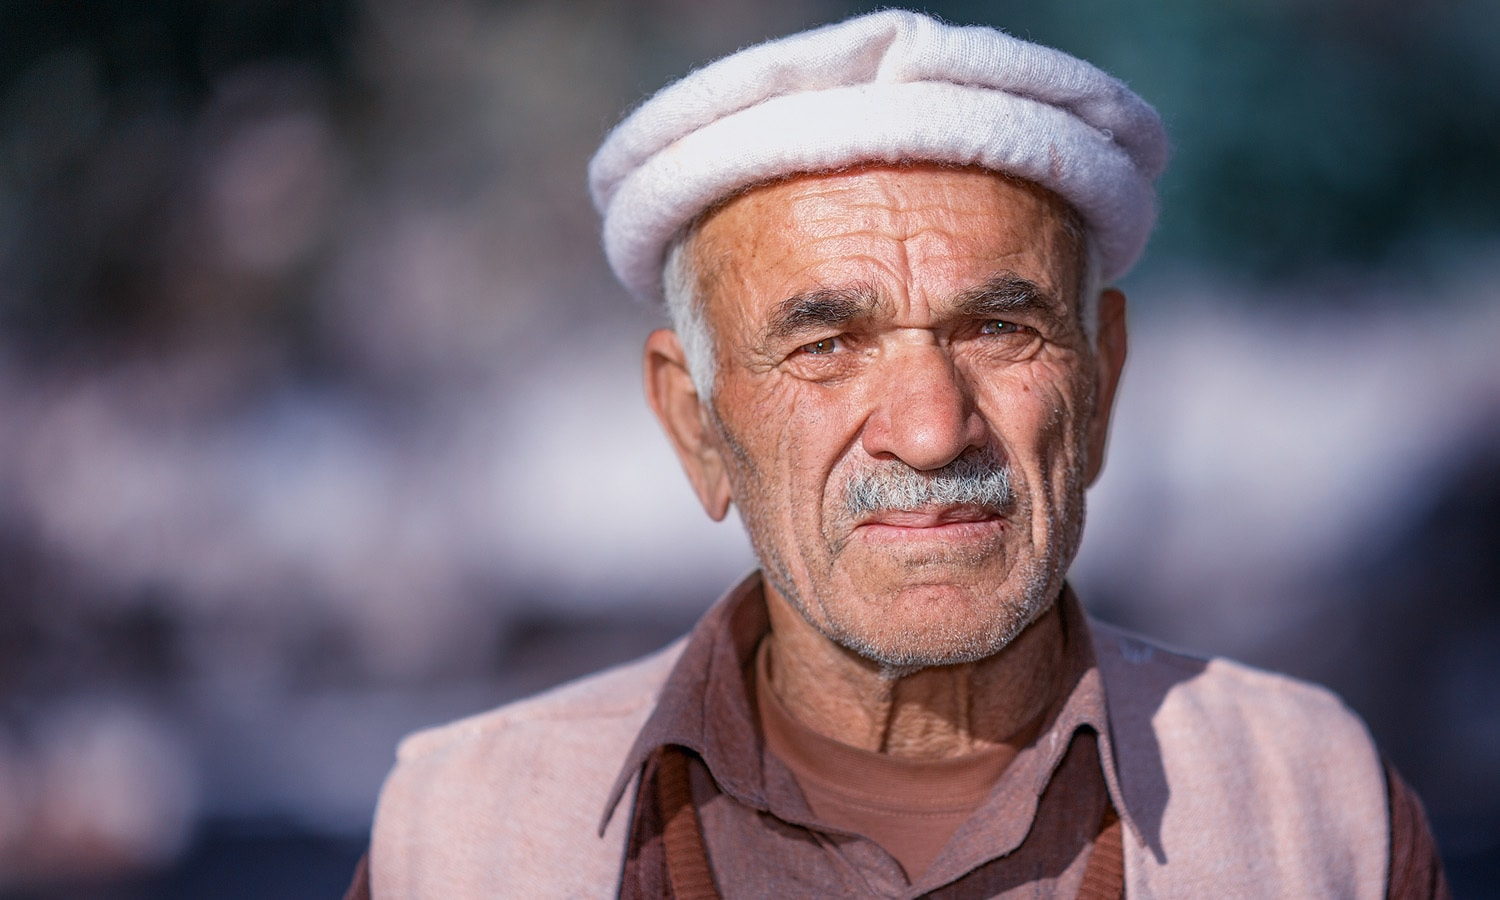 A face from Passu.